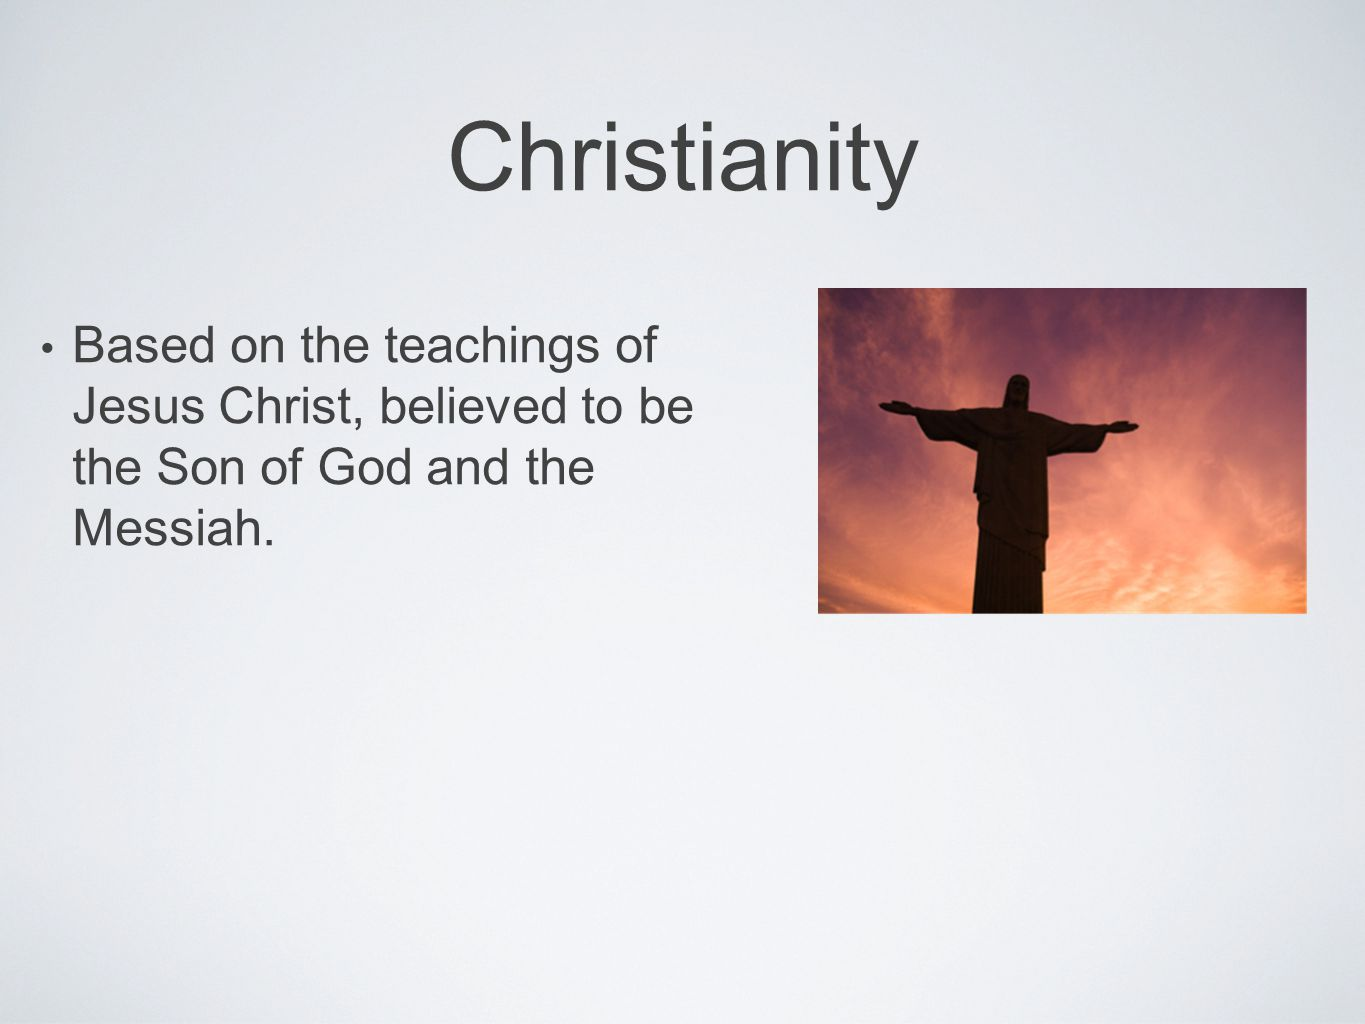 Christianity Based on the teachings of Jesus Christ, believed to be the Son of God and the Messiah.